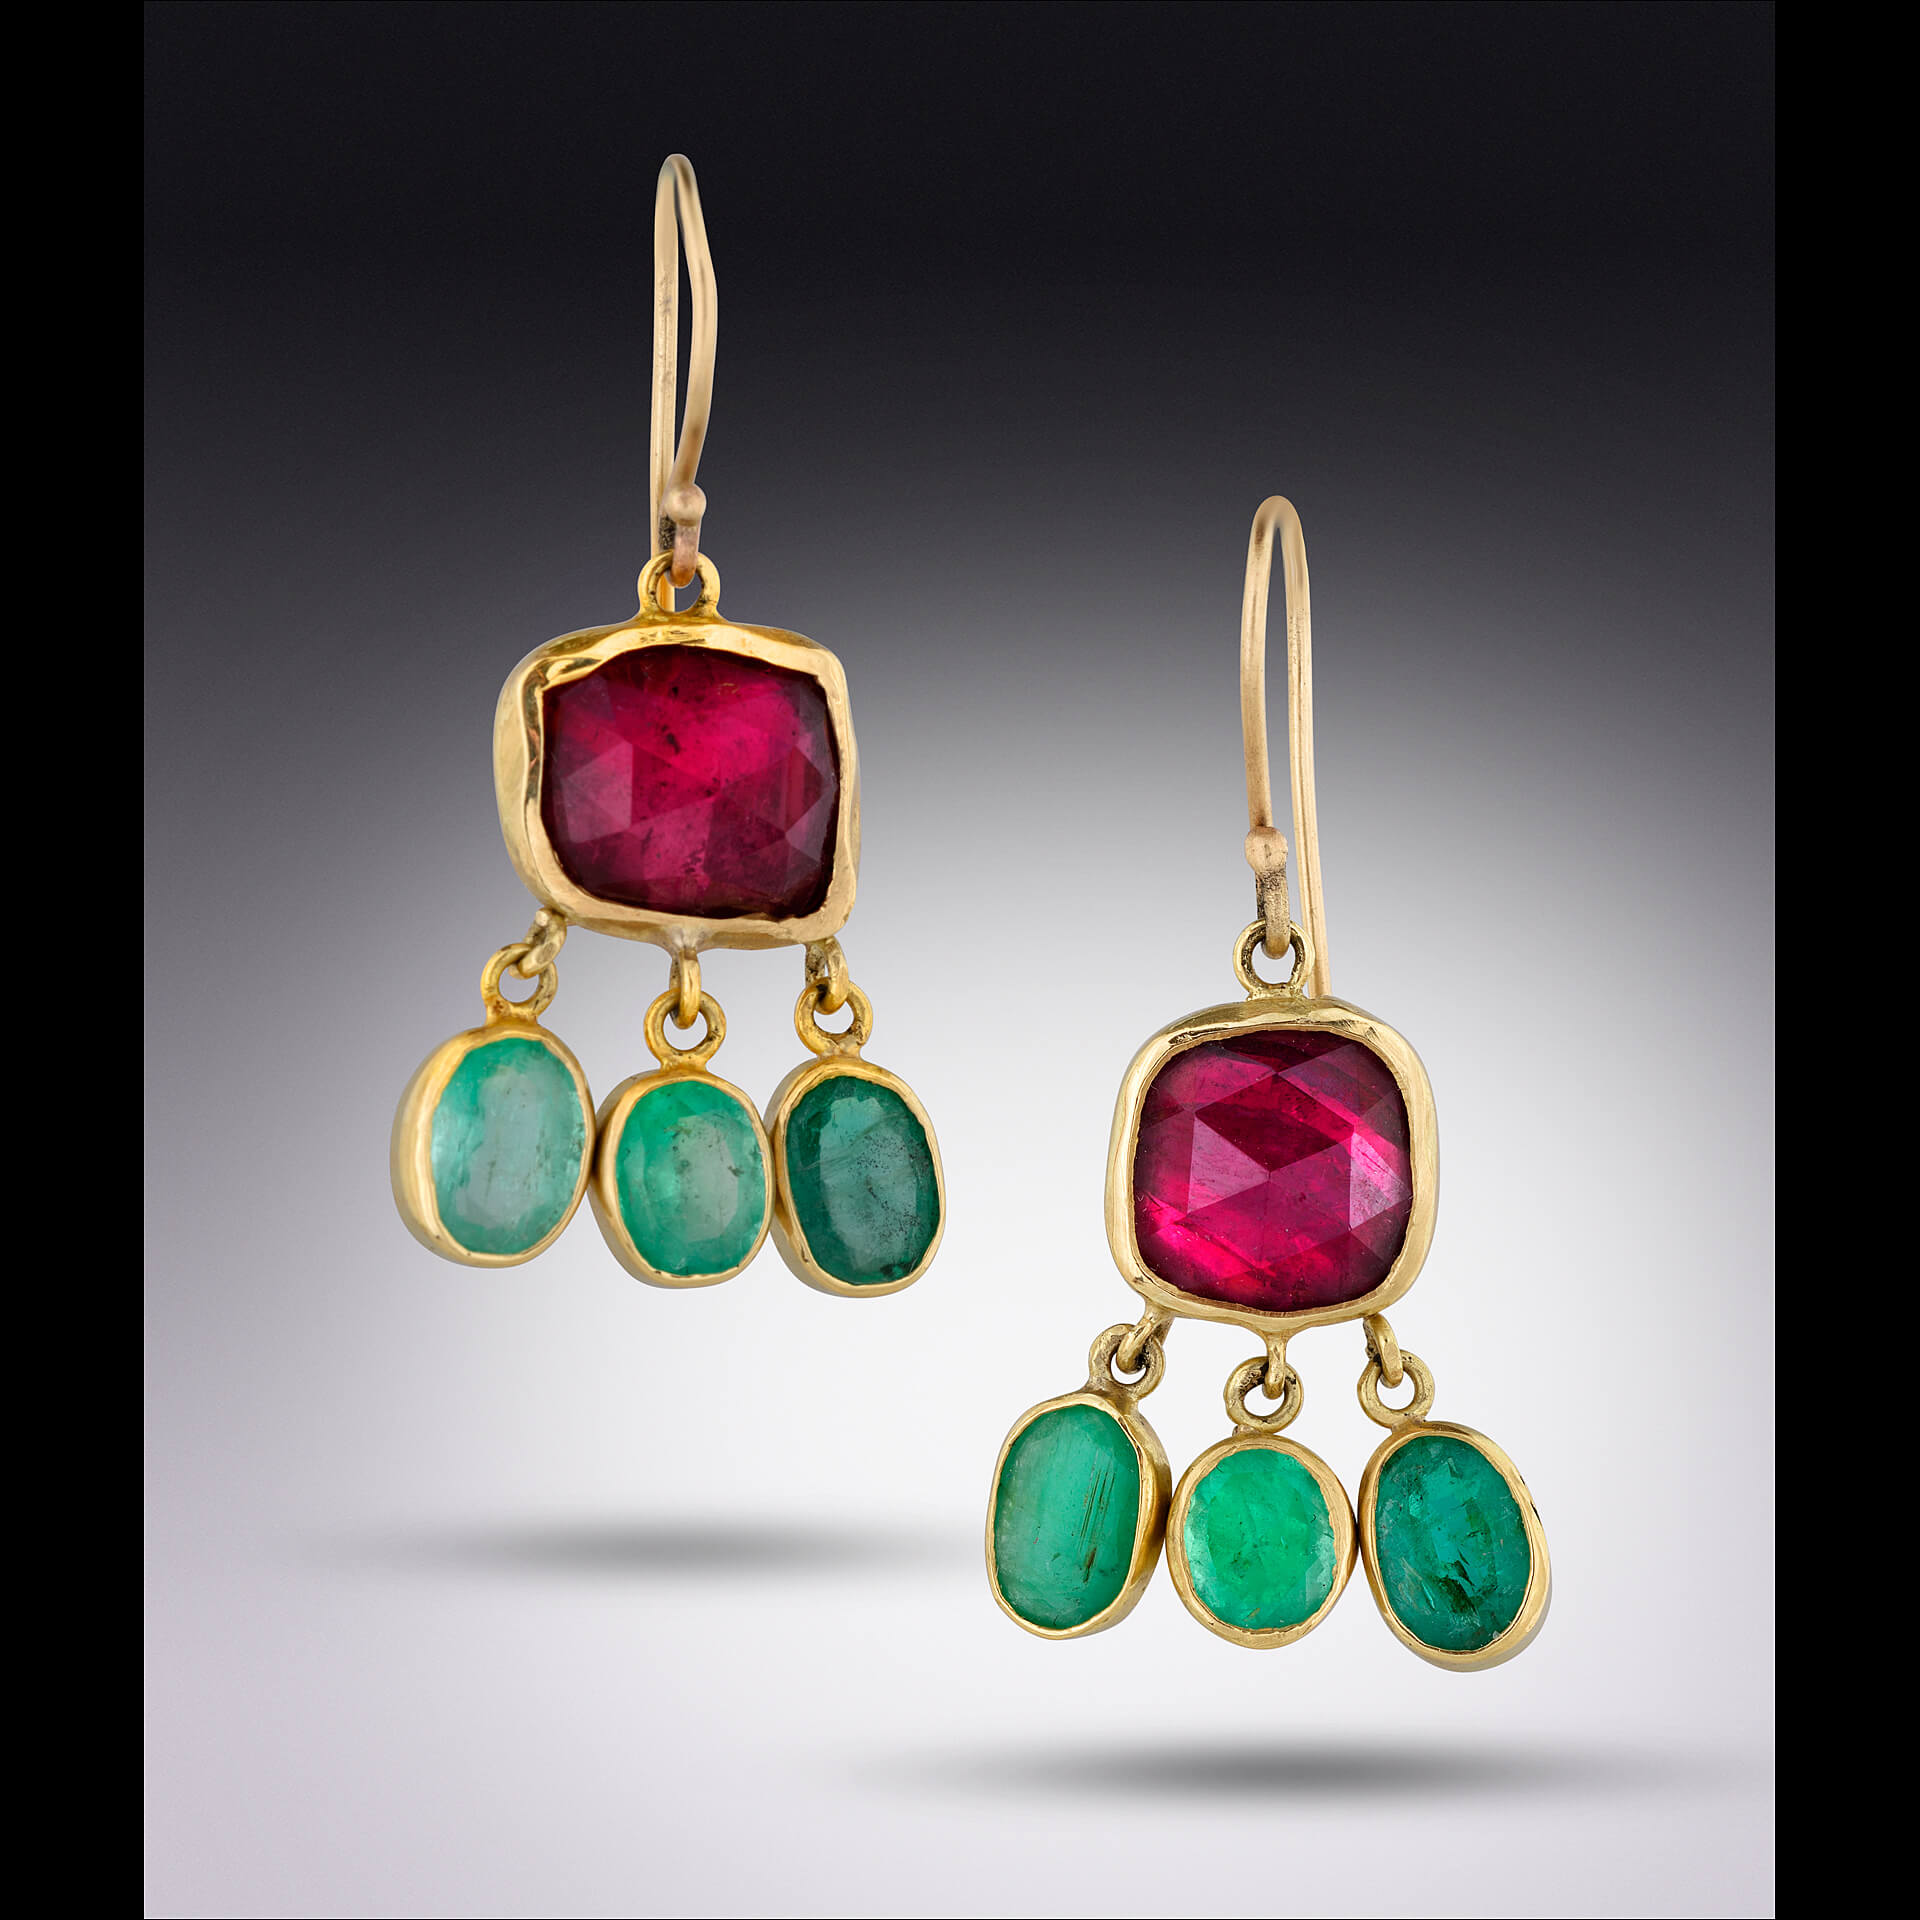 Lori Kaplan Jewelry: Rubellite and Emerald Earrings